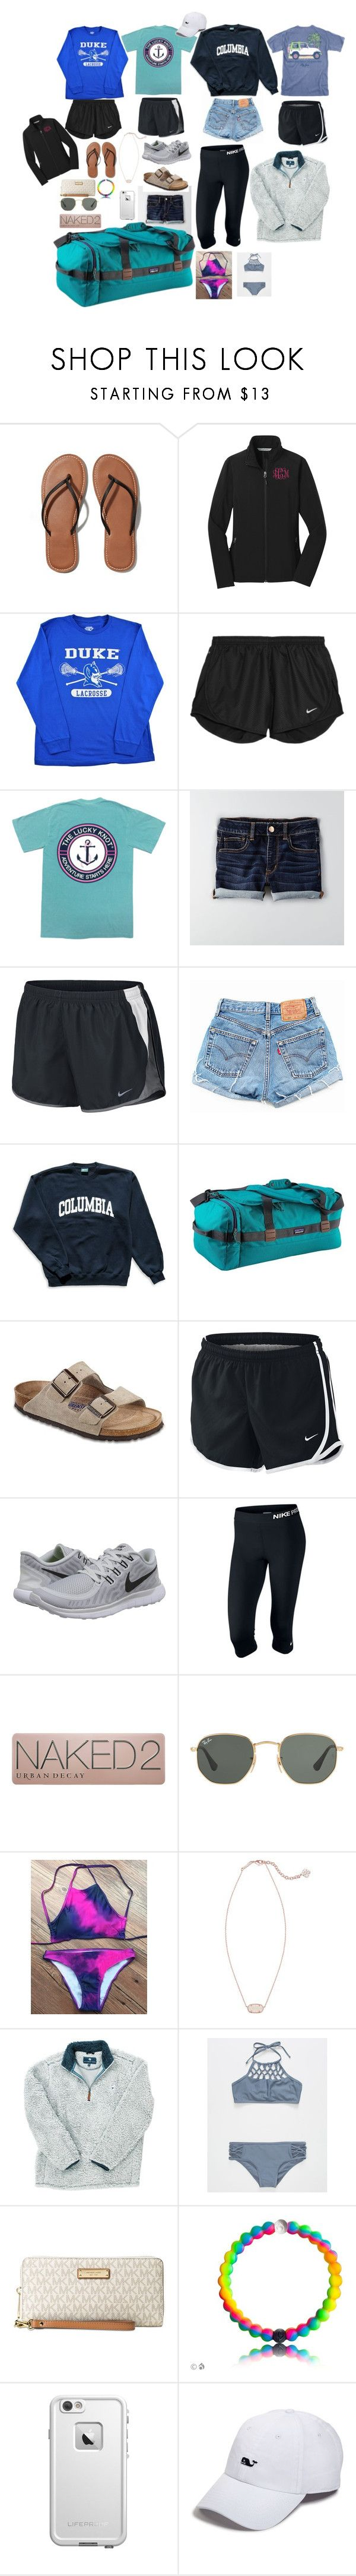 """""""Louisiana here I come"""" by realaddietude ❤ liked on Polyvore featuring Abercrombie & Fitch, NIKE, American Eagle Outfitters, Levi's, Columbia, Patagonia, Birkenstock, Urban Decay, Ray-Ban and Kendra Scott"""